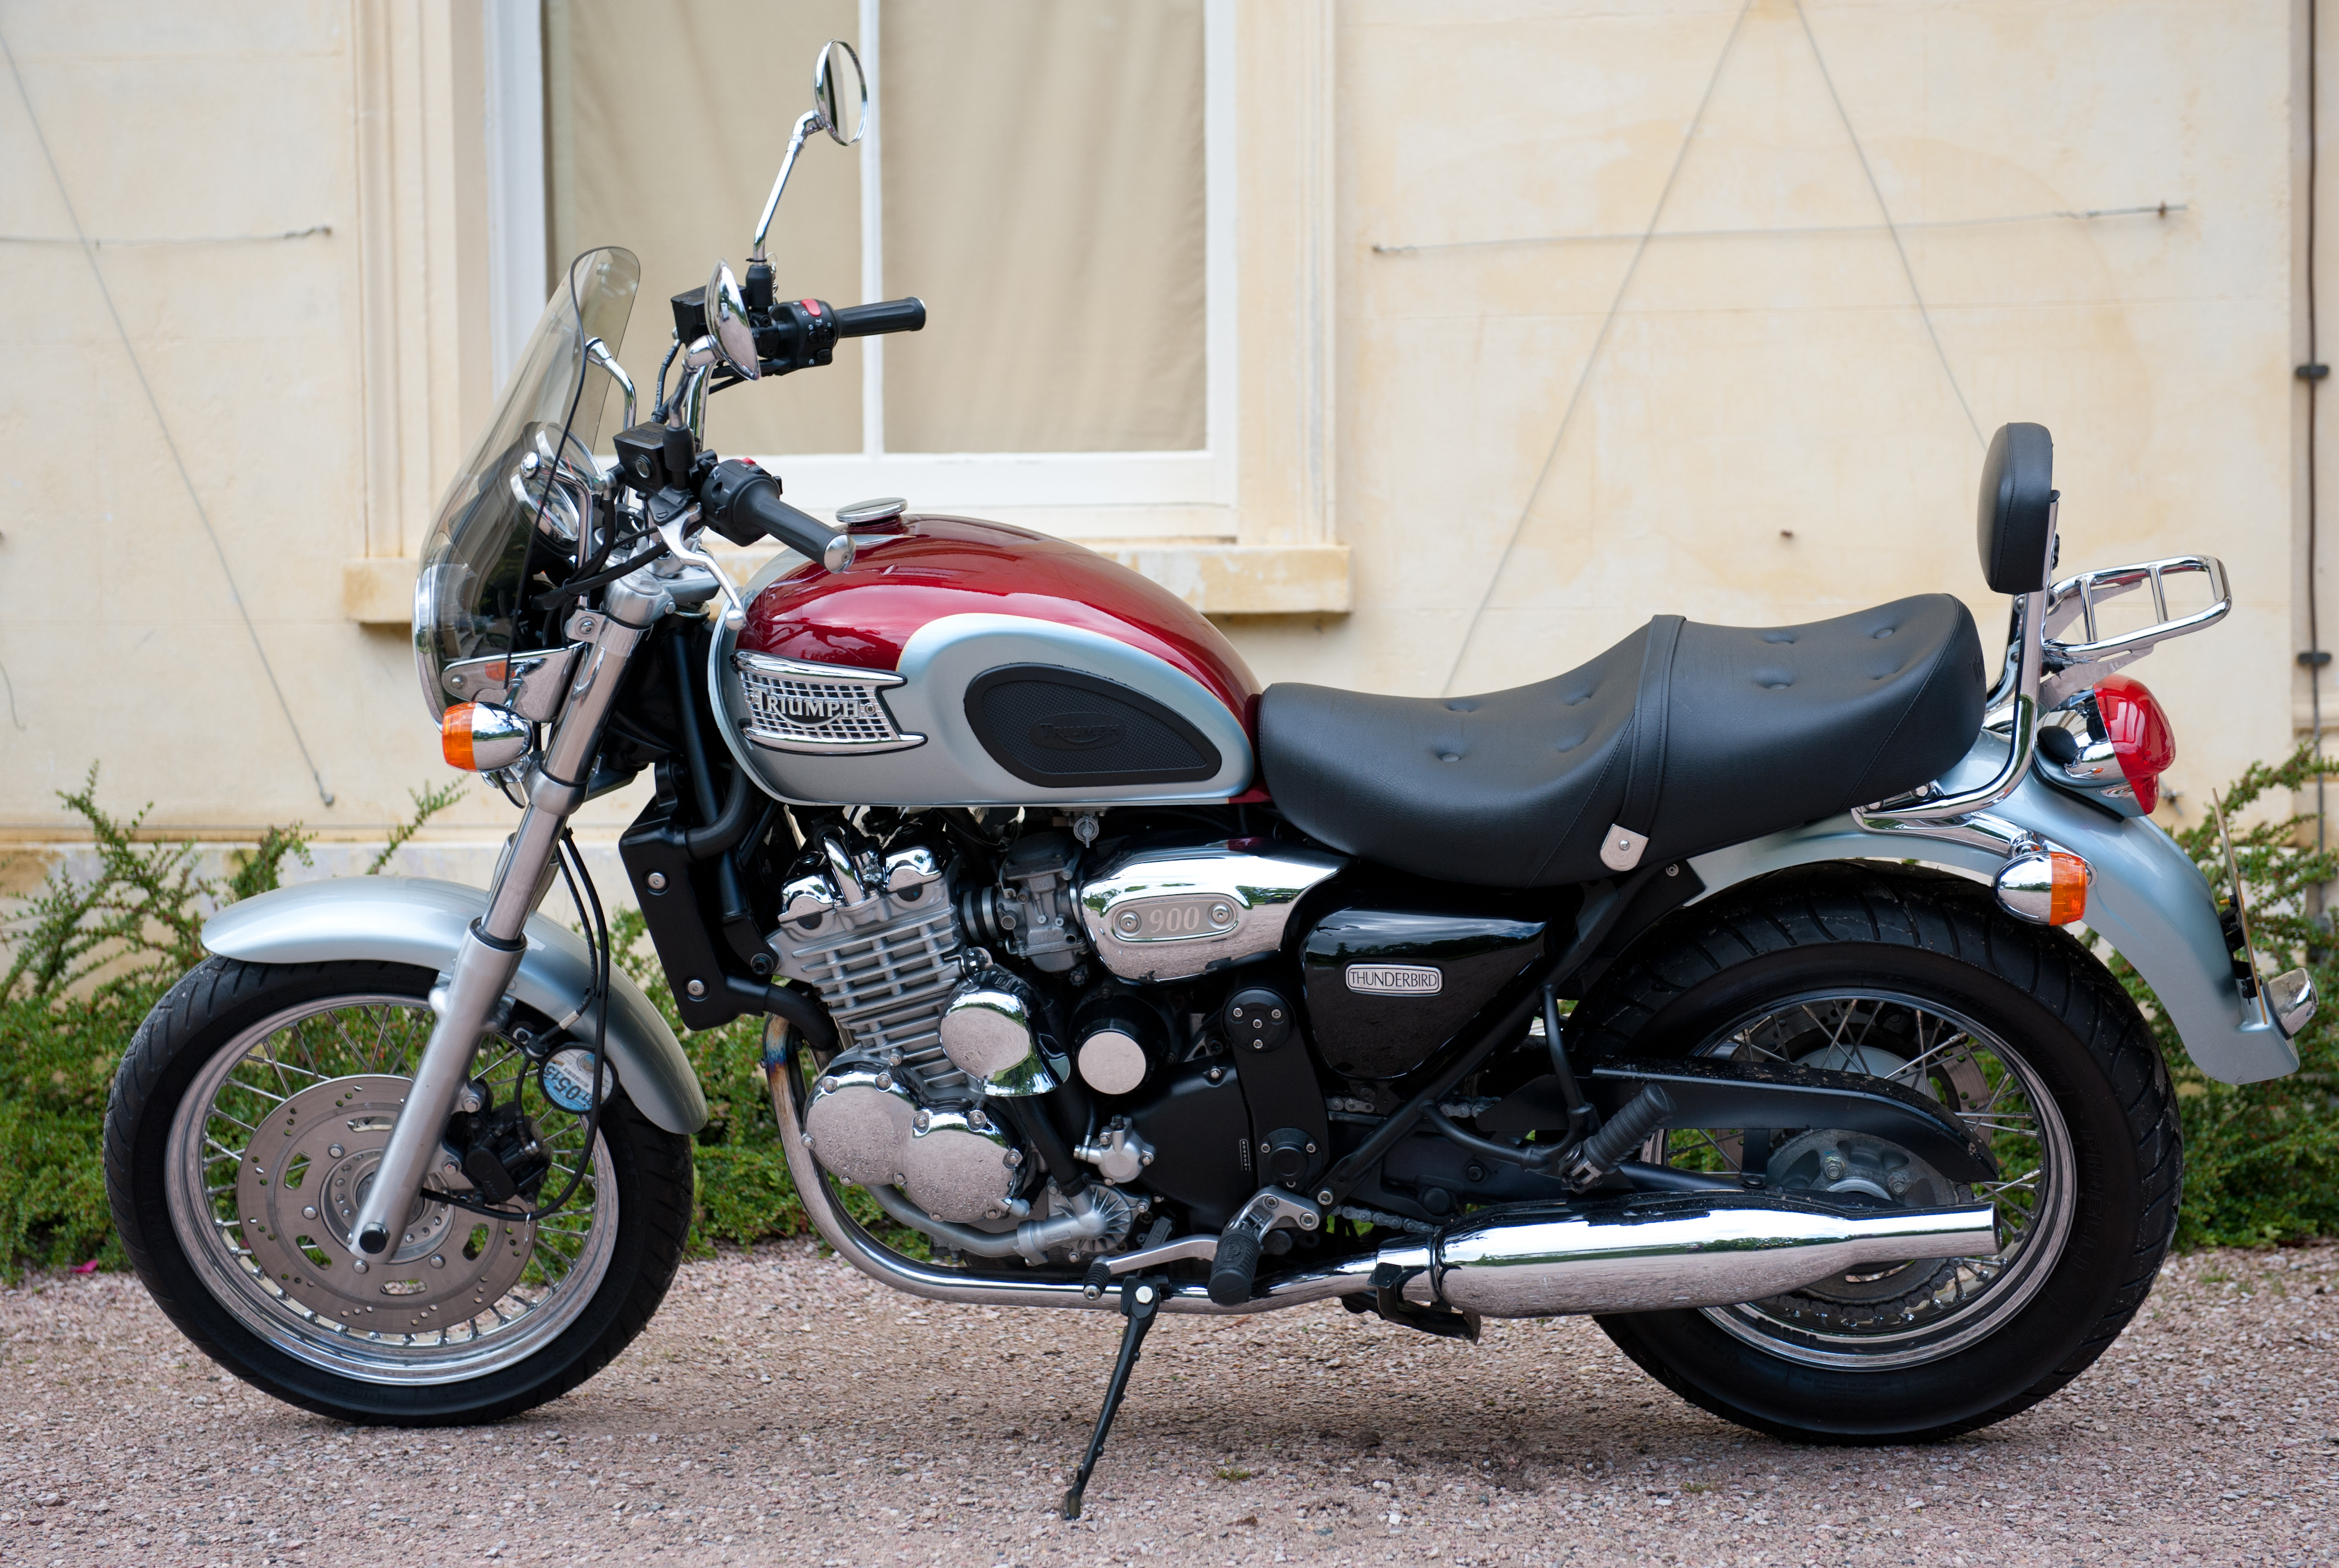 Triumph Thunderbird 900 Adventurer 1995 images #164995